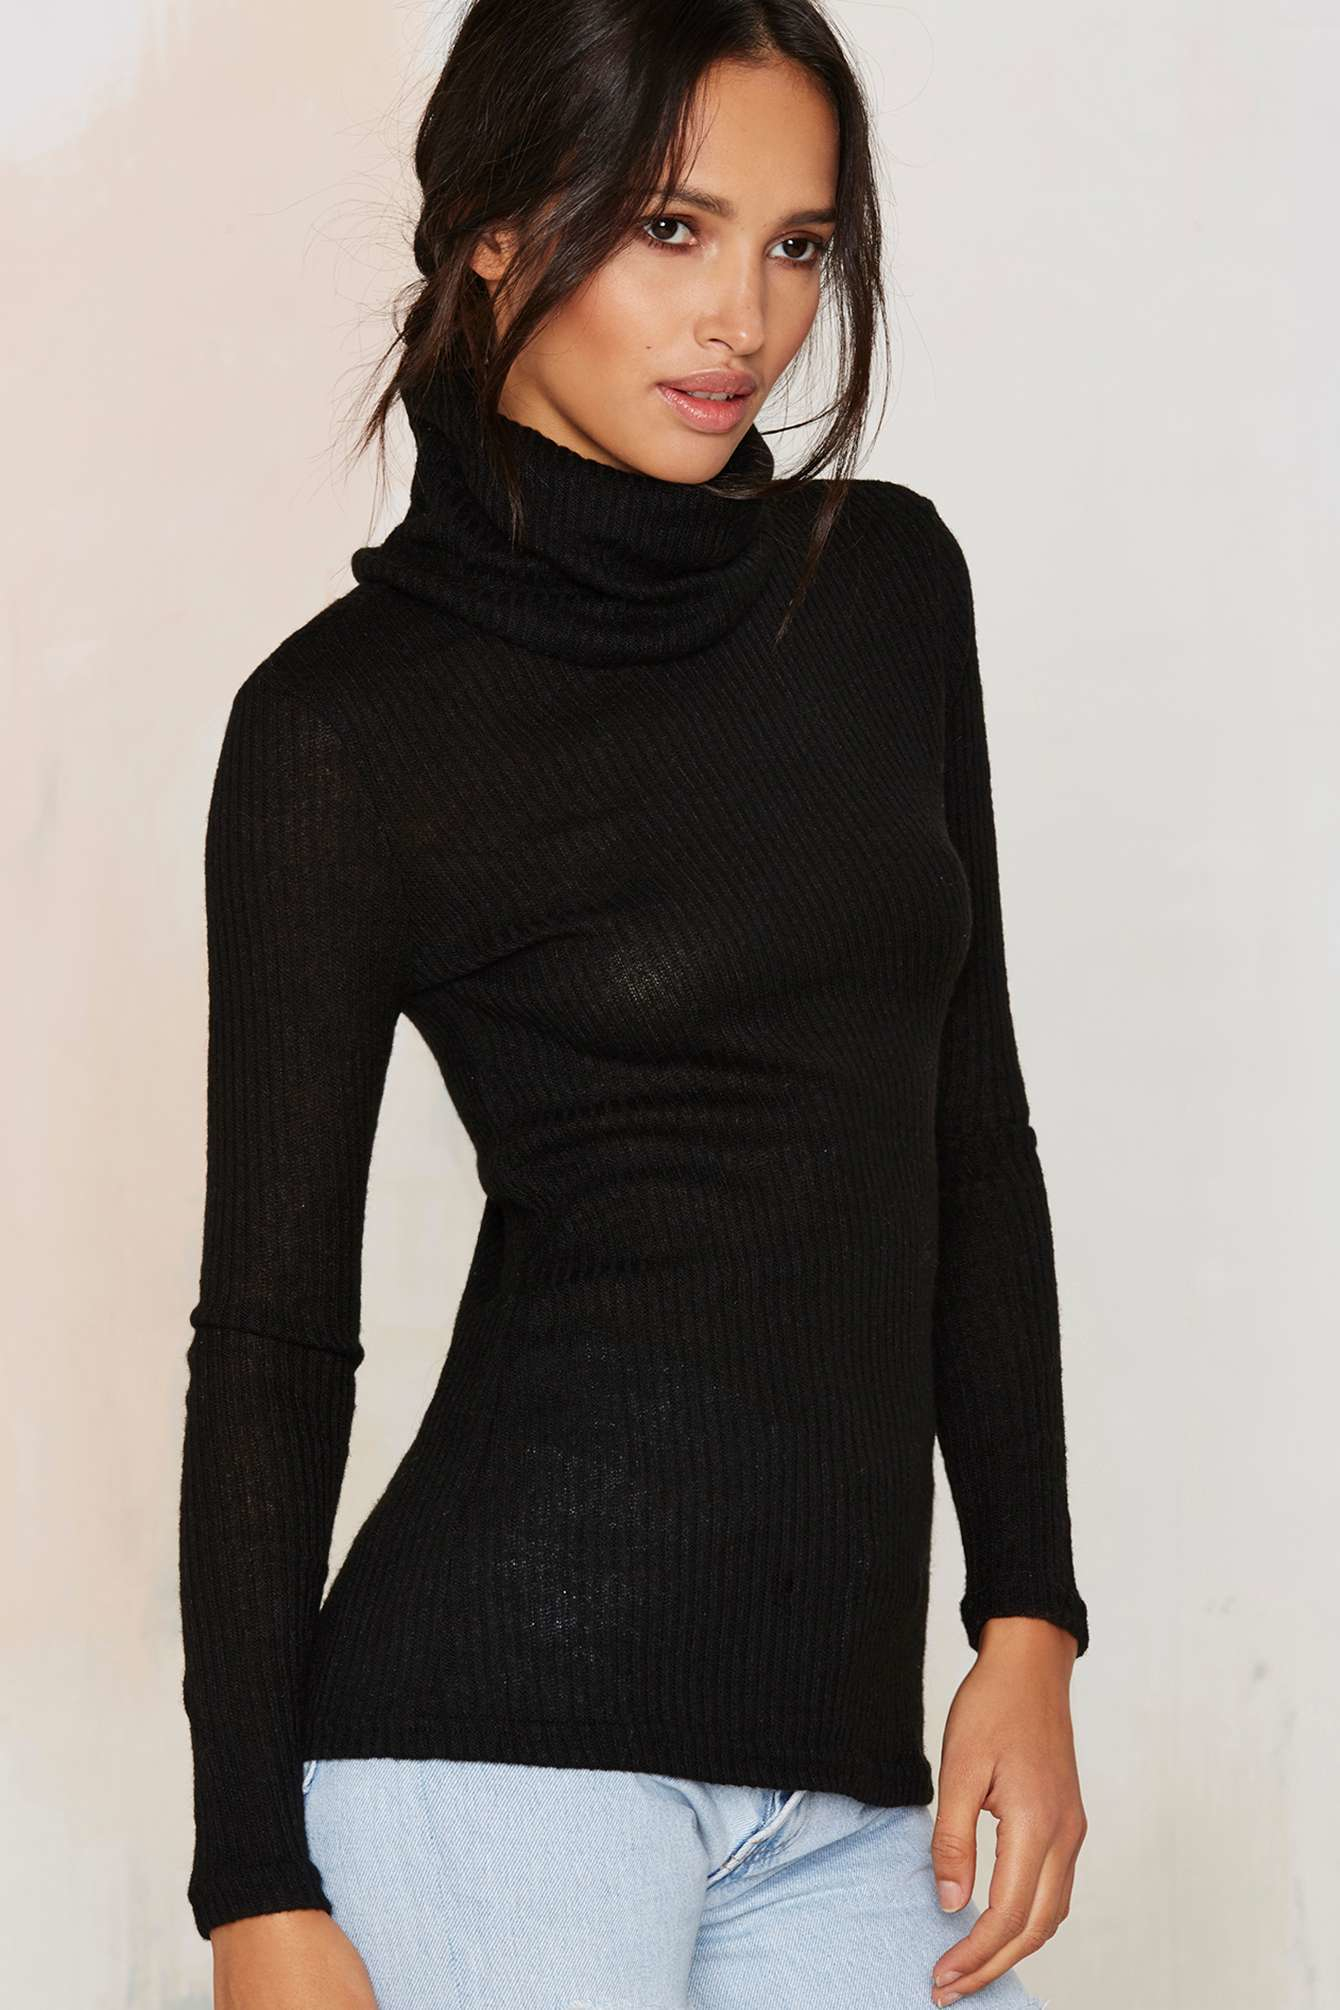 100  [ Ribbed Turtleneck Sweater ] | Cheap Ribbed Turtleneck ...